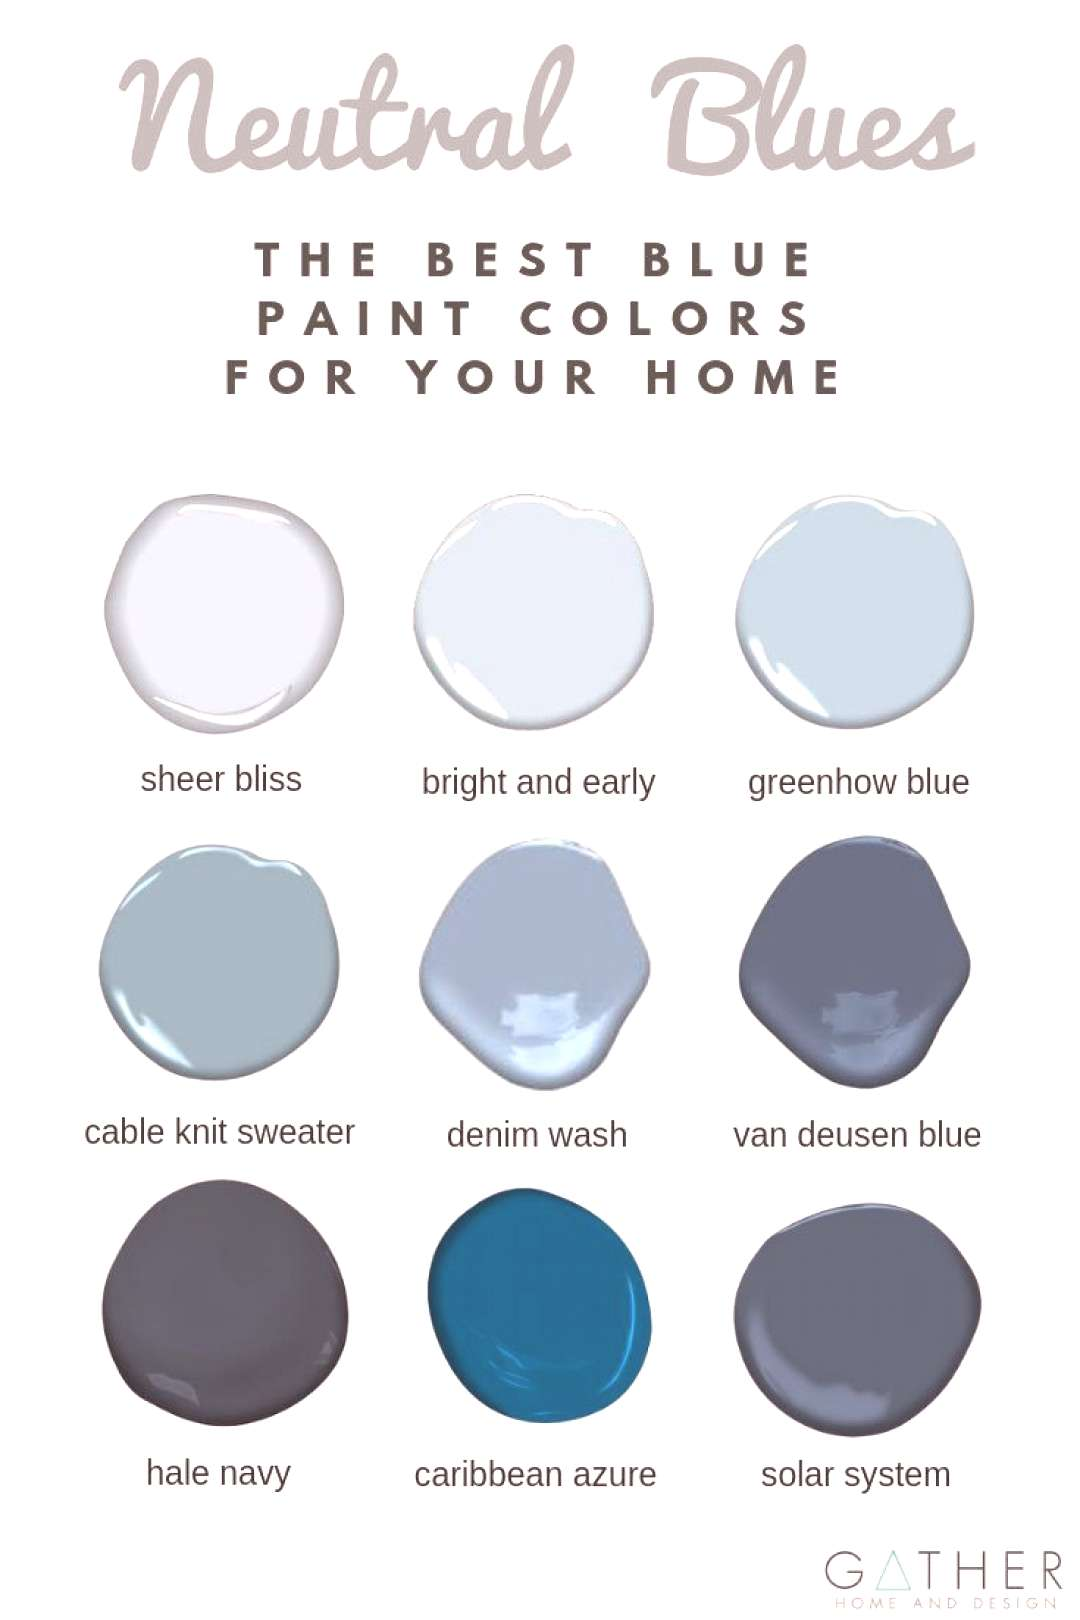 What are the best blue paint colors for your living room, kitchen, bedroom, or bathroom? Check out